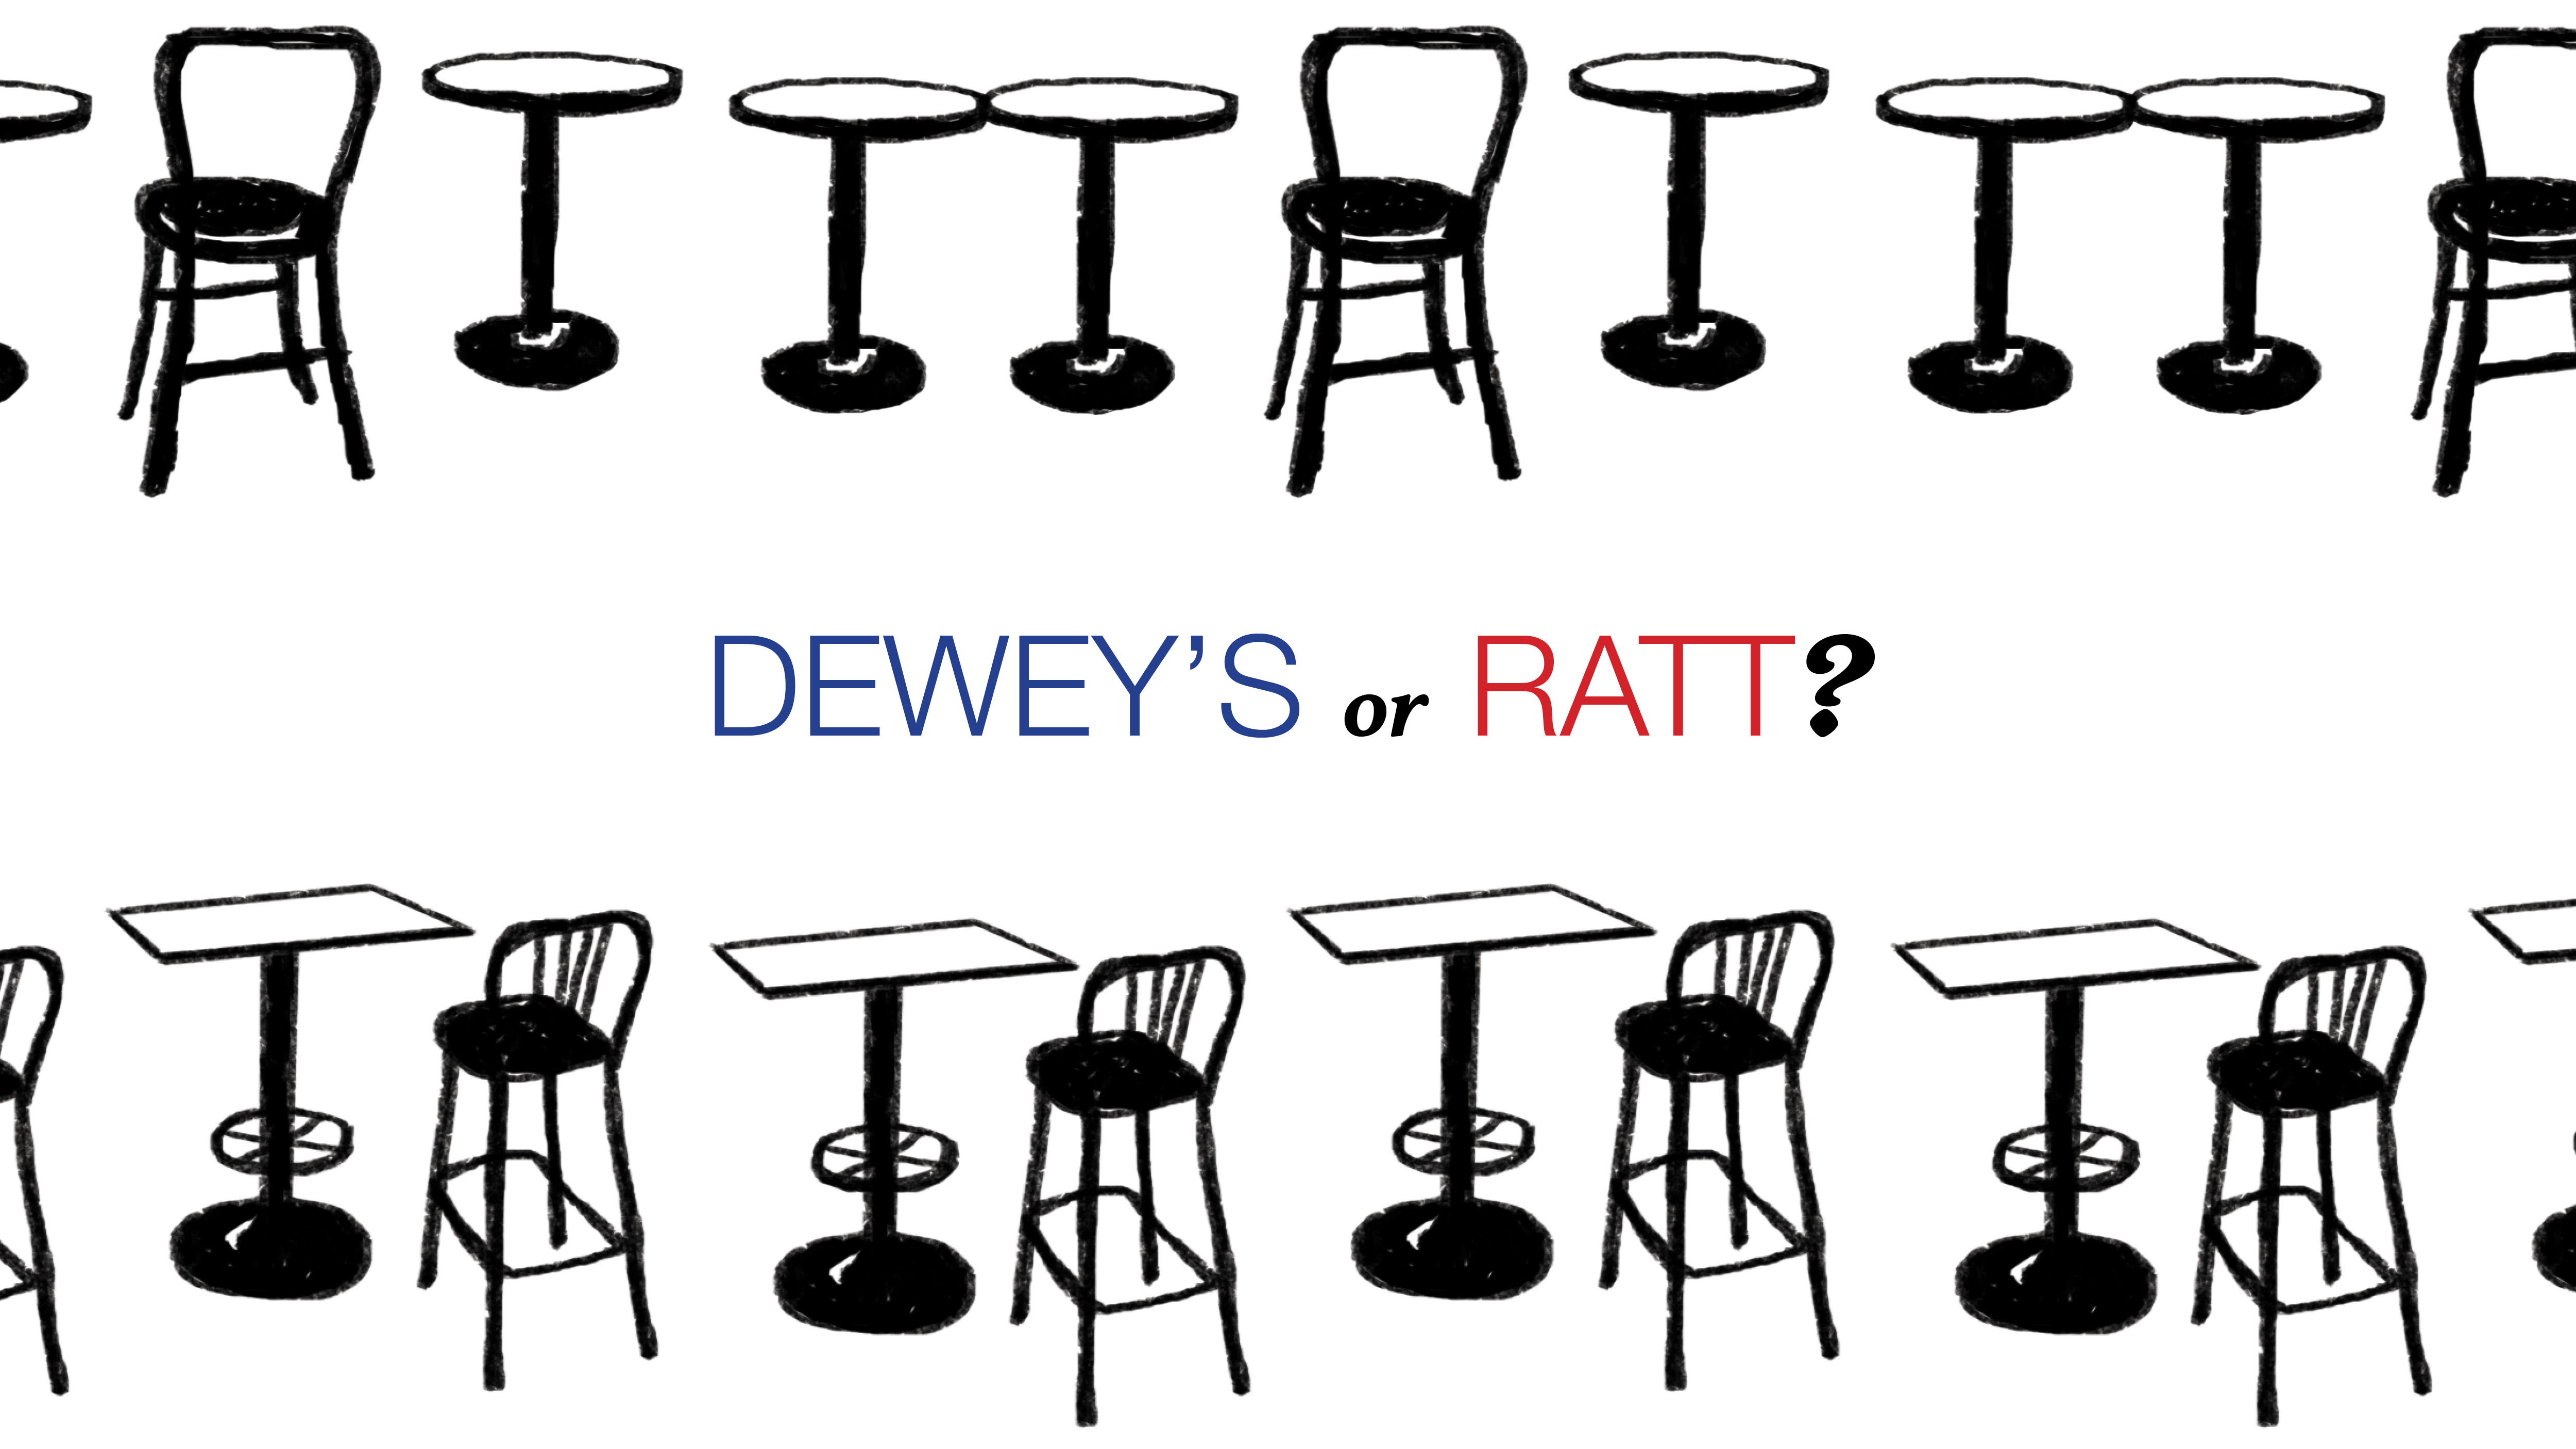 Point Counterpoint: Dewey's or RATT?